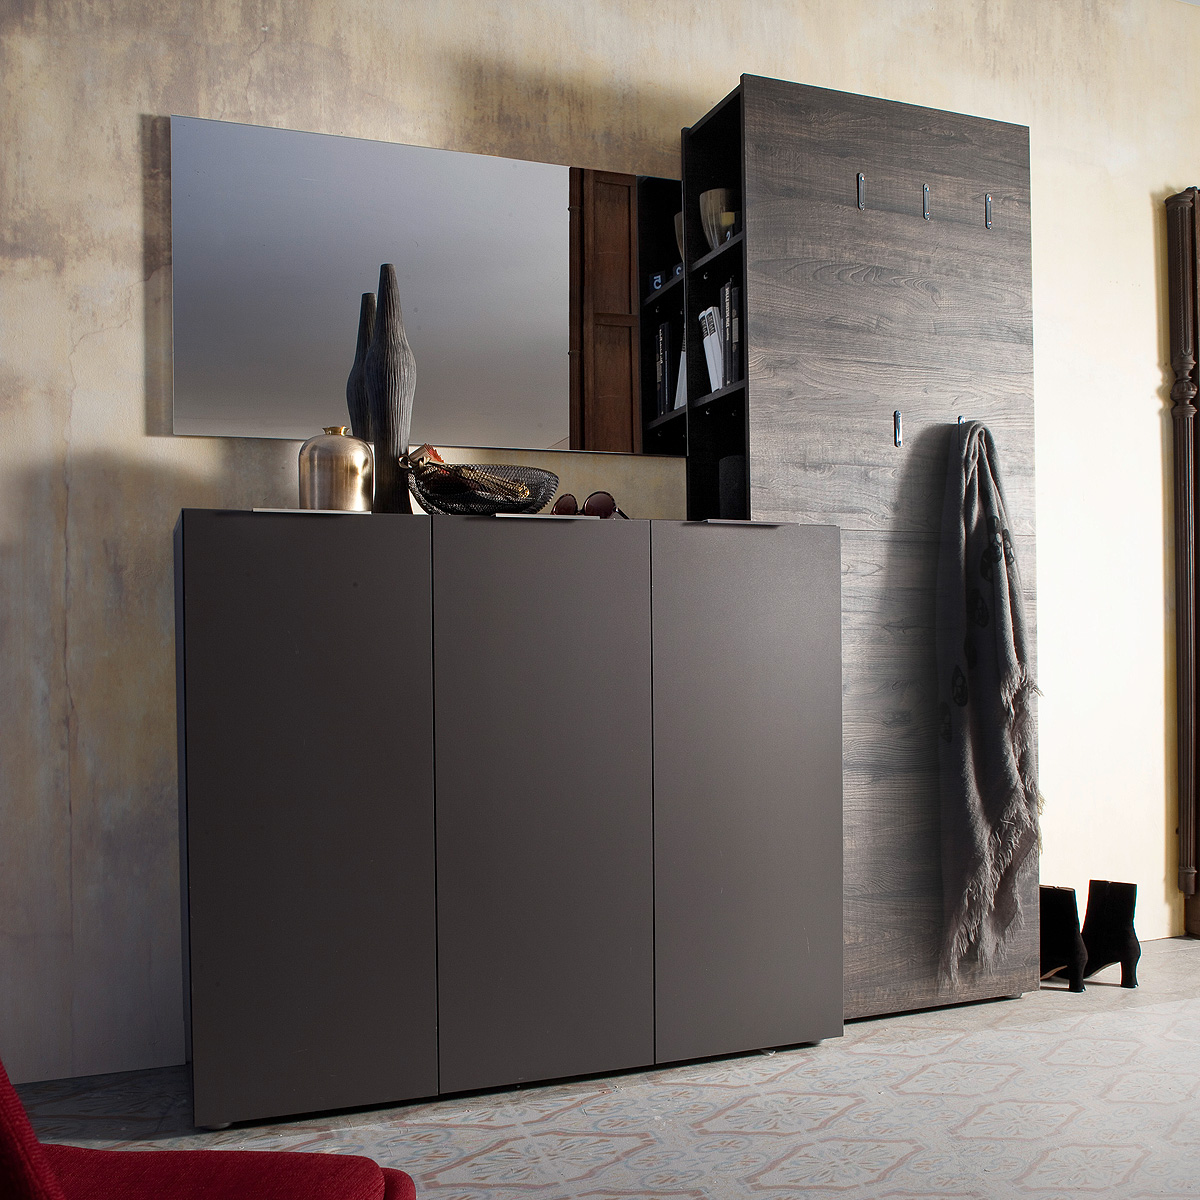 garderobenset 3 vicenza garderobe in anthrazit matt lackiert und wenge ebay. Black Bedroom Furniture Sets. Home Design Ideas